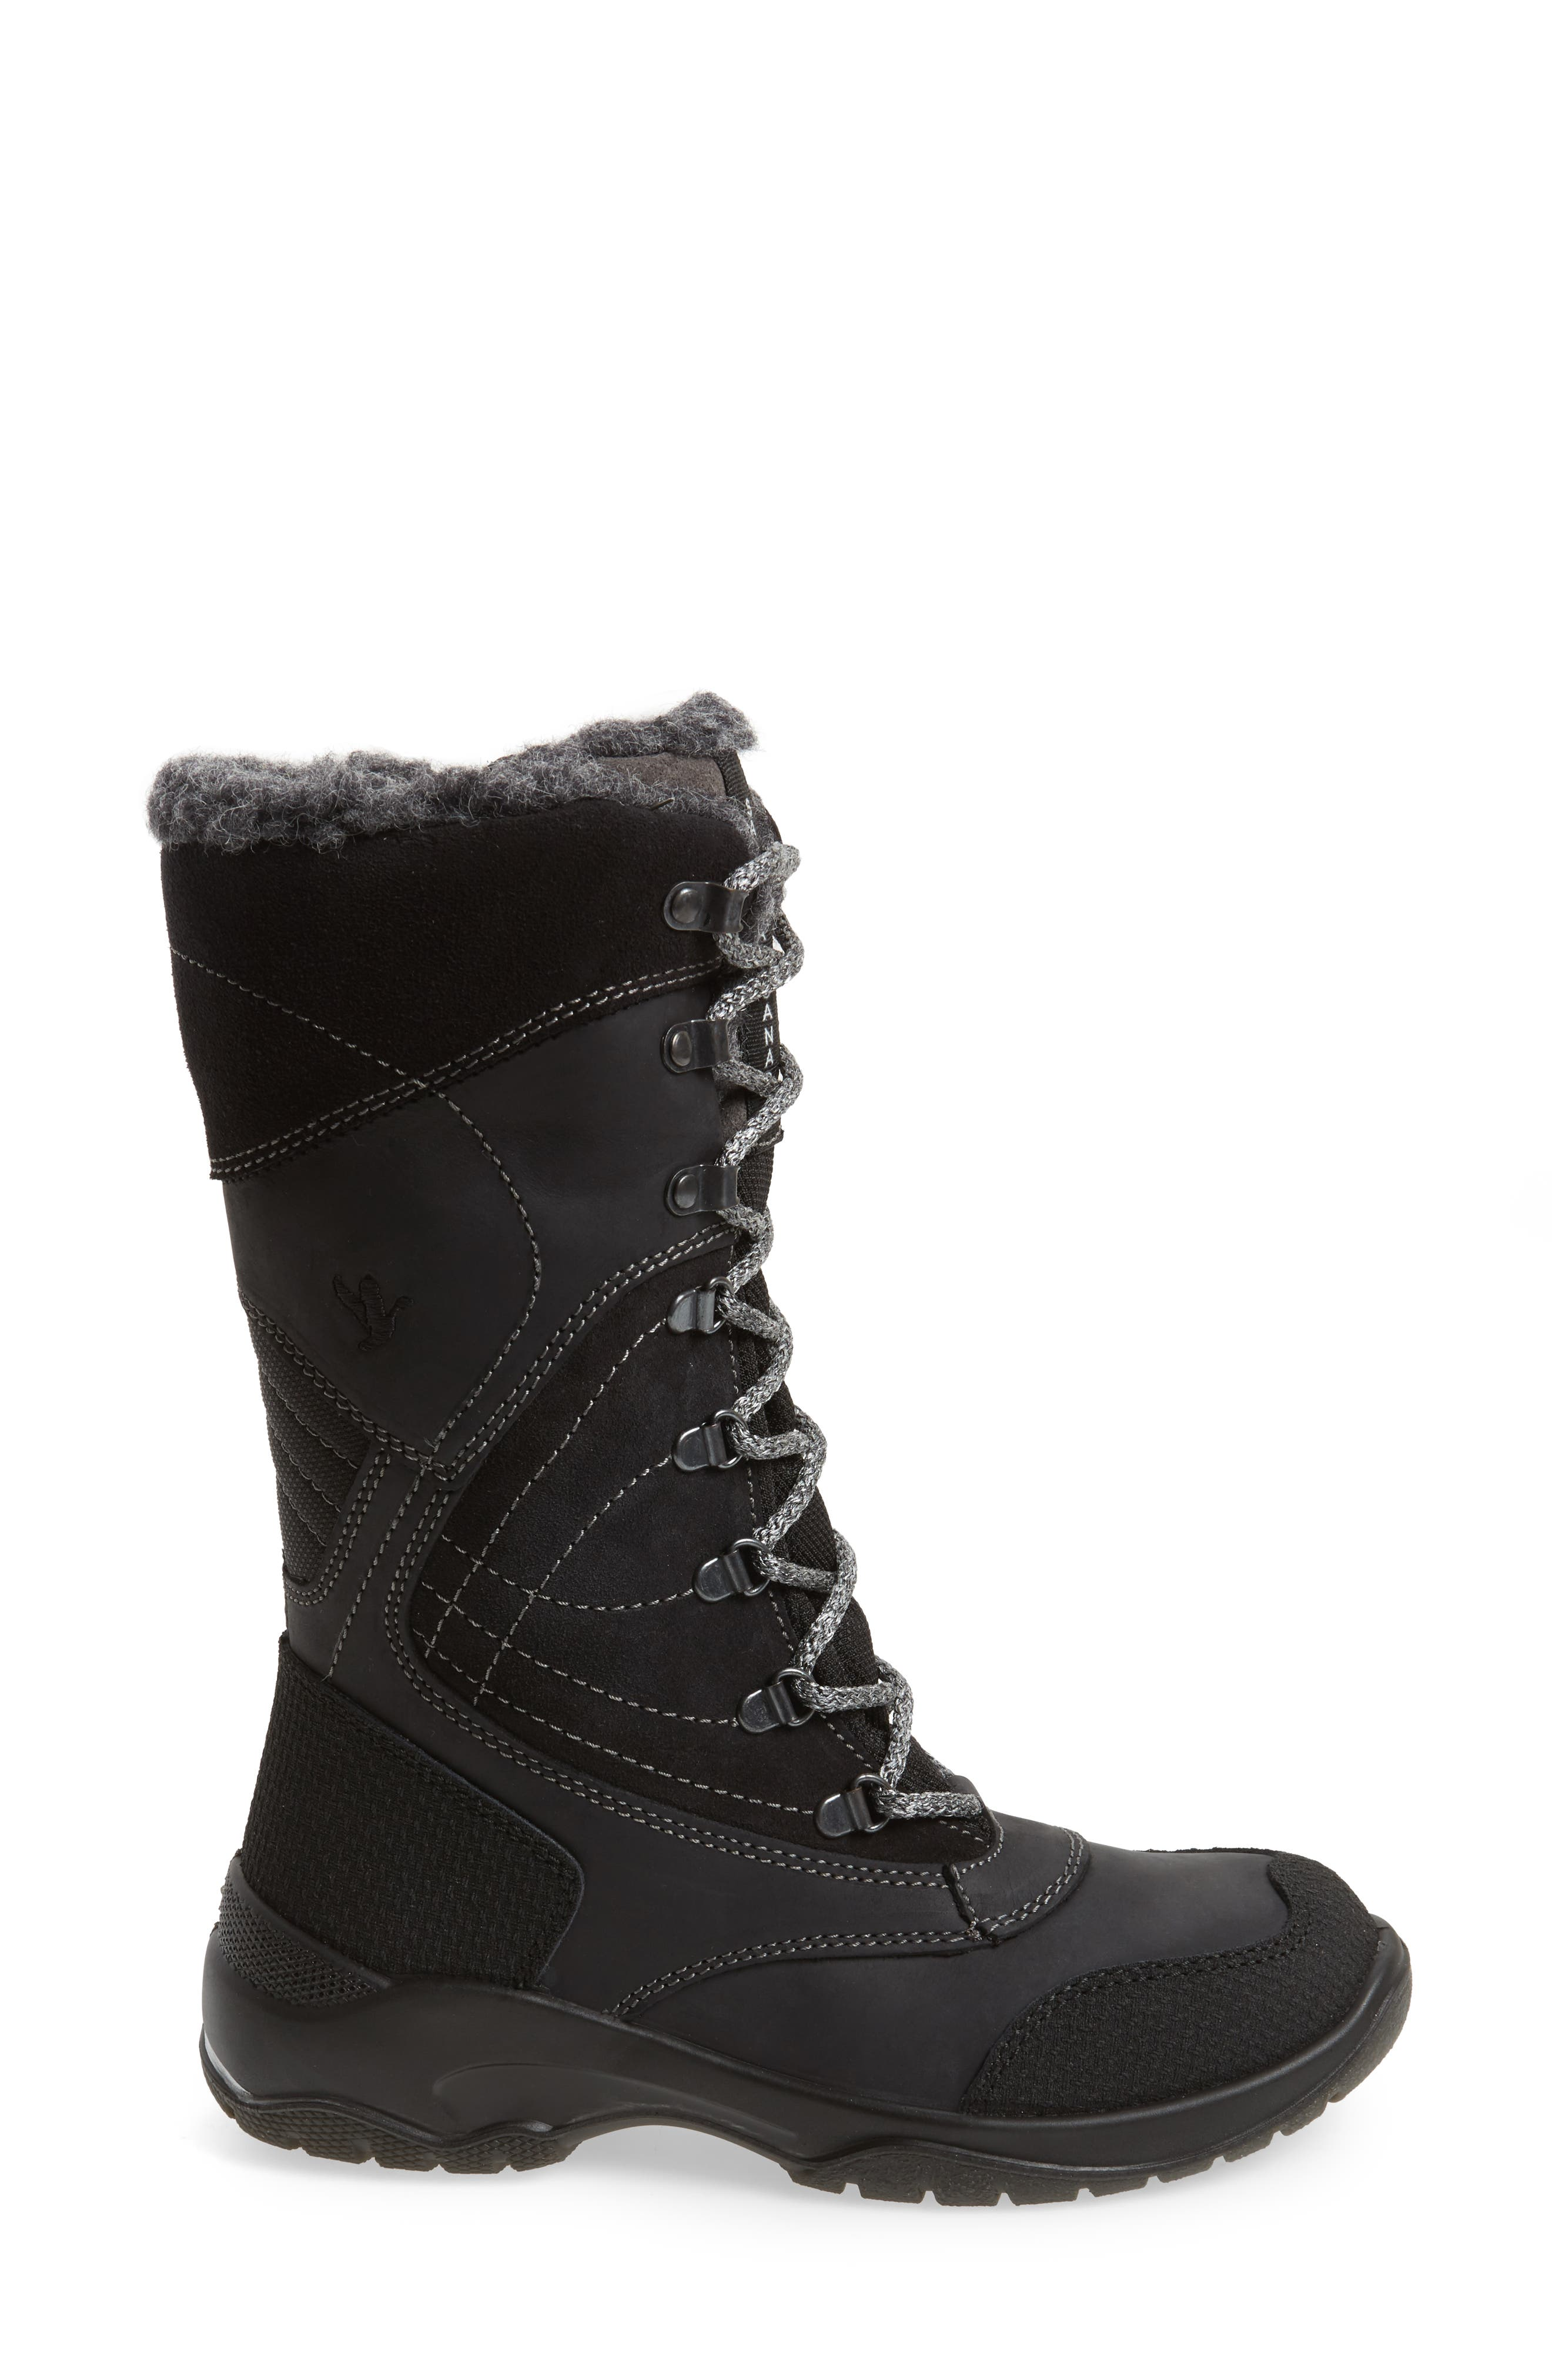 Topspeed Faux Fur Lined Waterproof Boot,                             Alternate thumbnail 3, color,                             Black Leather